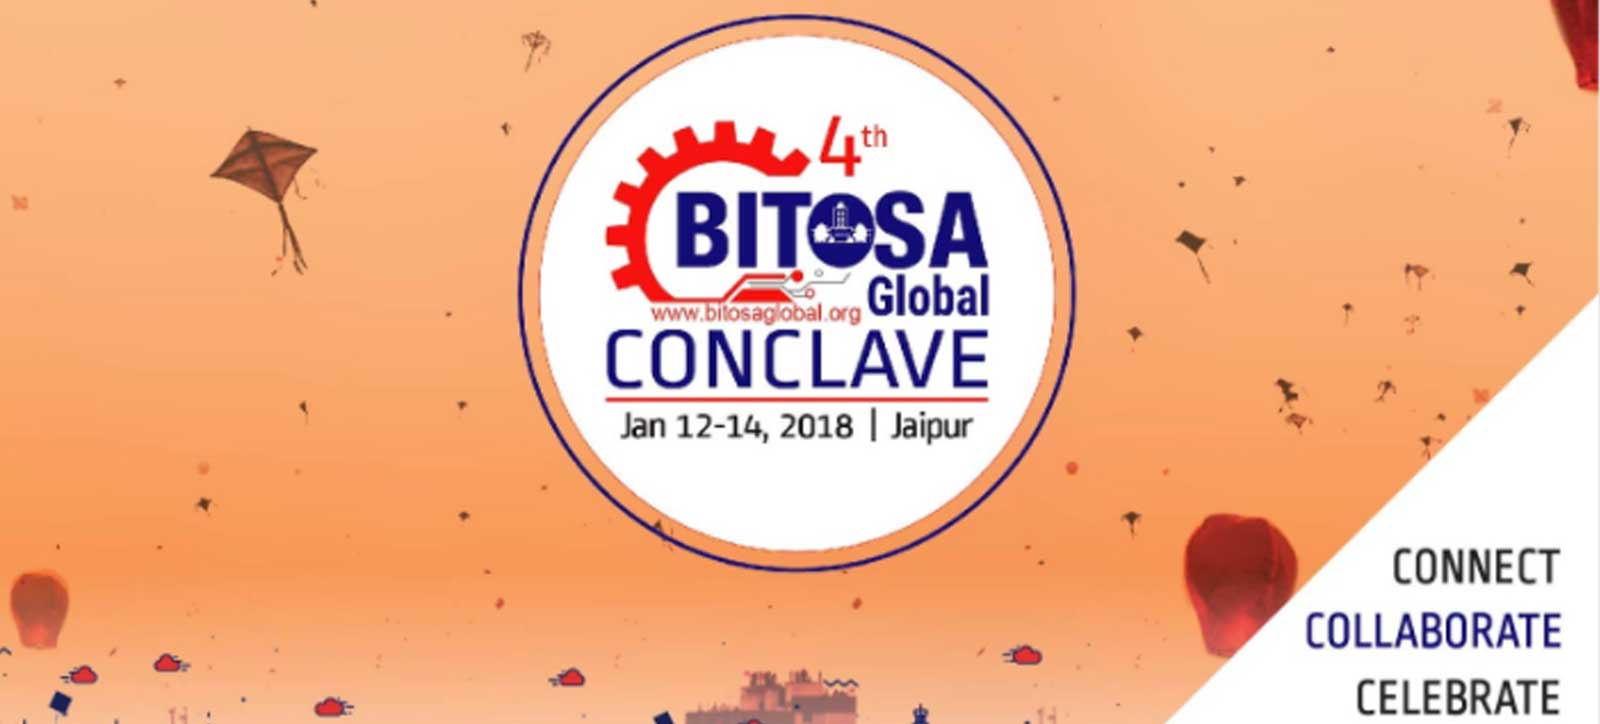 BITOSA GLOBAL CONCLAVE 4 Poster